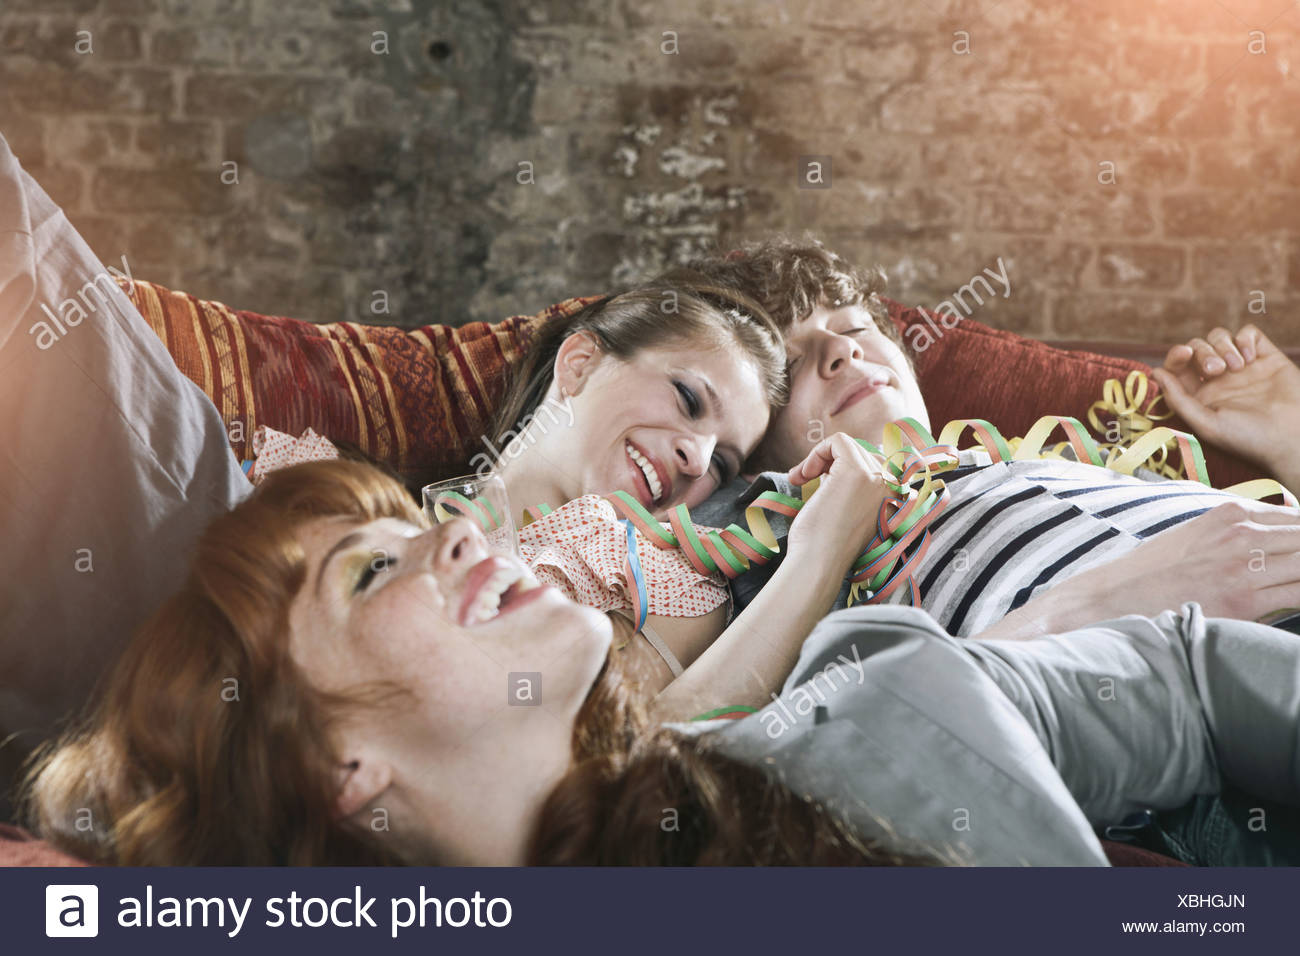 Germany, Berlin, Close up of young man and women relaxing on couch, smiling - Stock Image